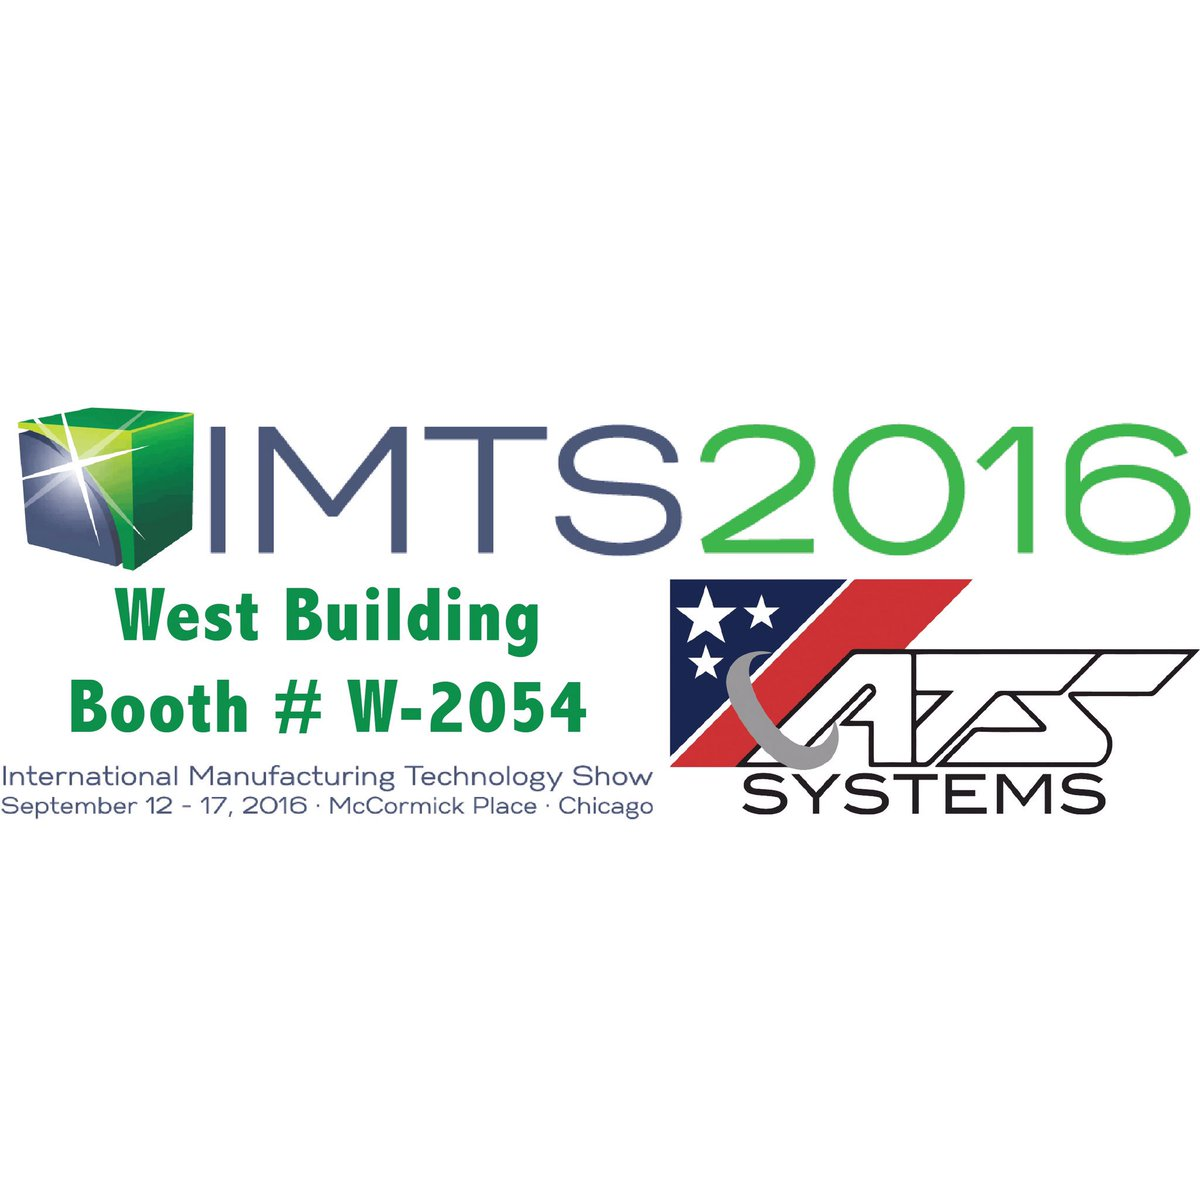 ats systems on good morning chicago good morning imts ats systems on good morning chicago good morning imts imts imts2016 workholding automation highpressurecoolant t co nqjknre9ic